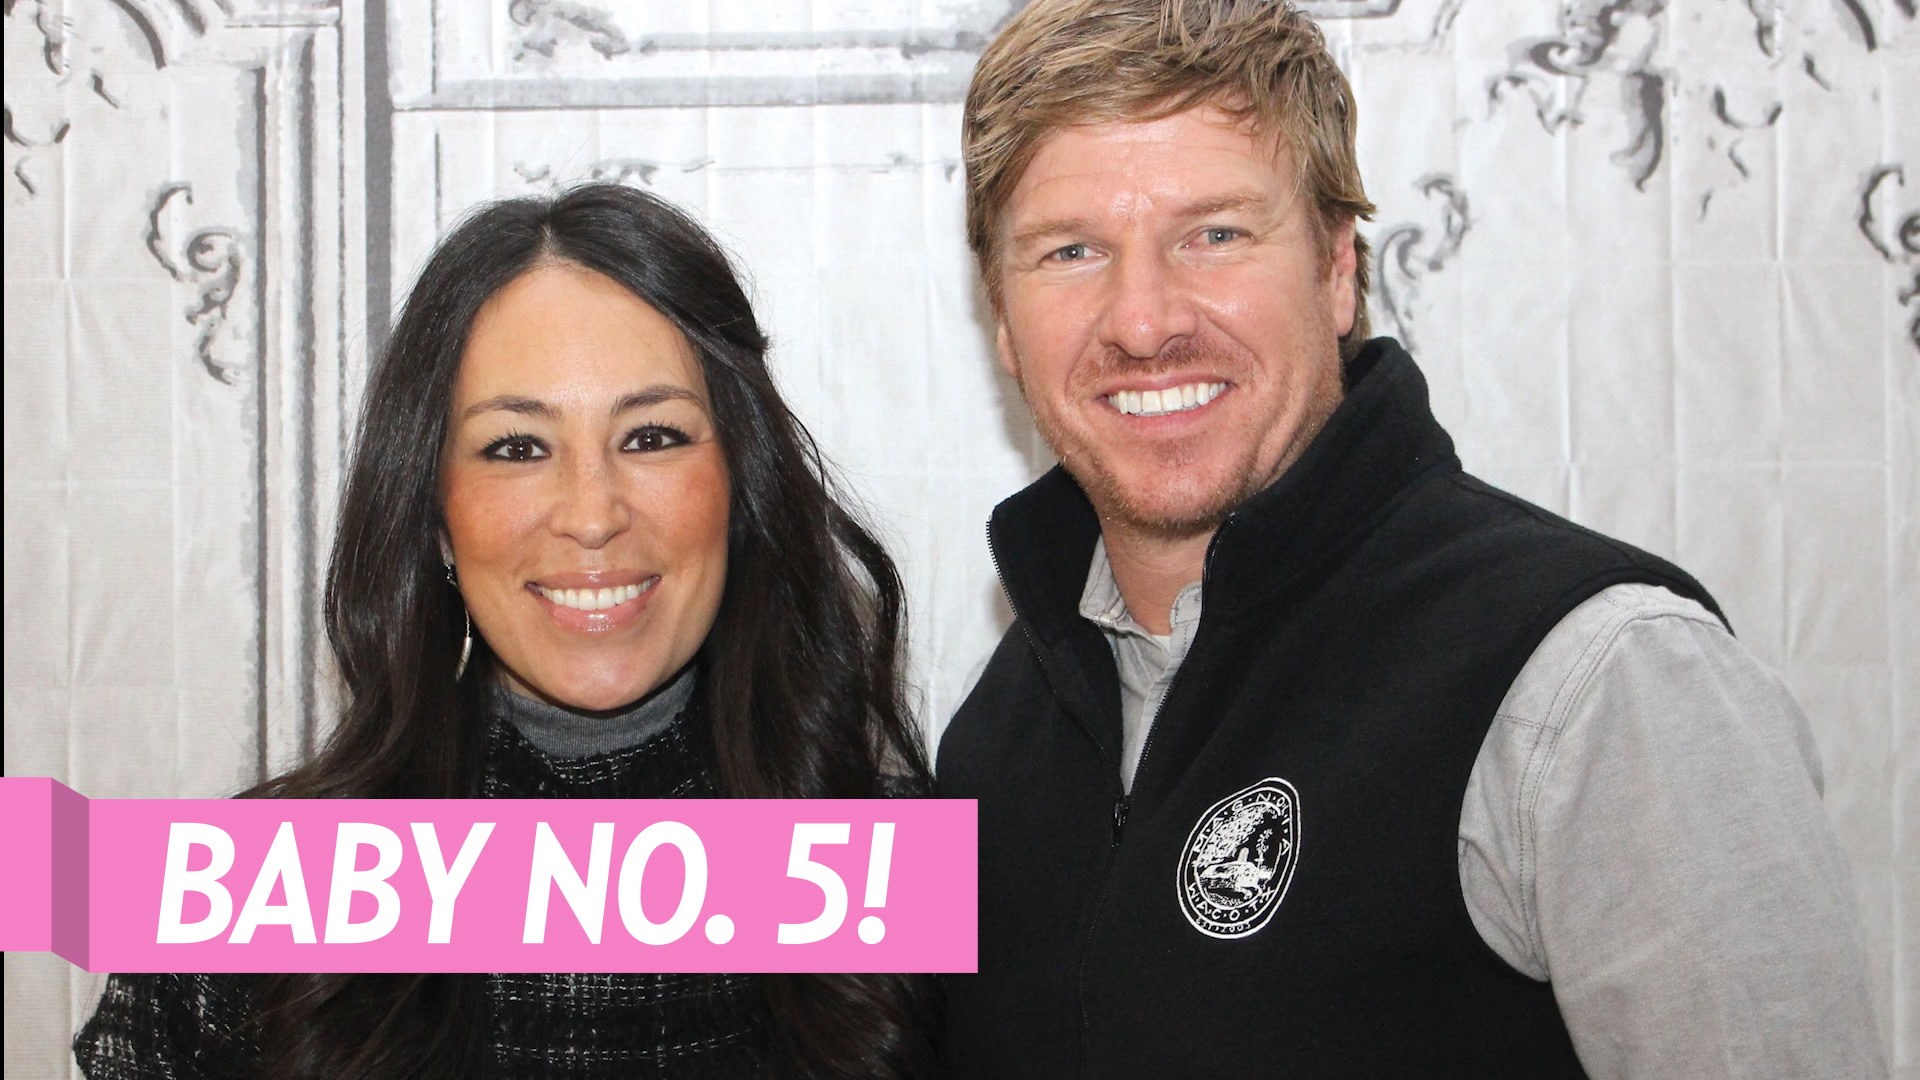 Joanna Gaines Gives Birth, Welcomes Baby No  5 With Husband Chip